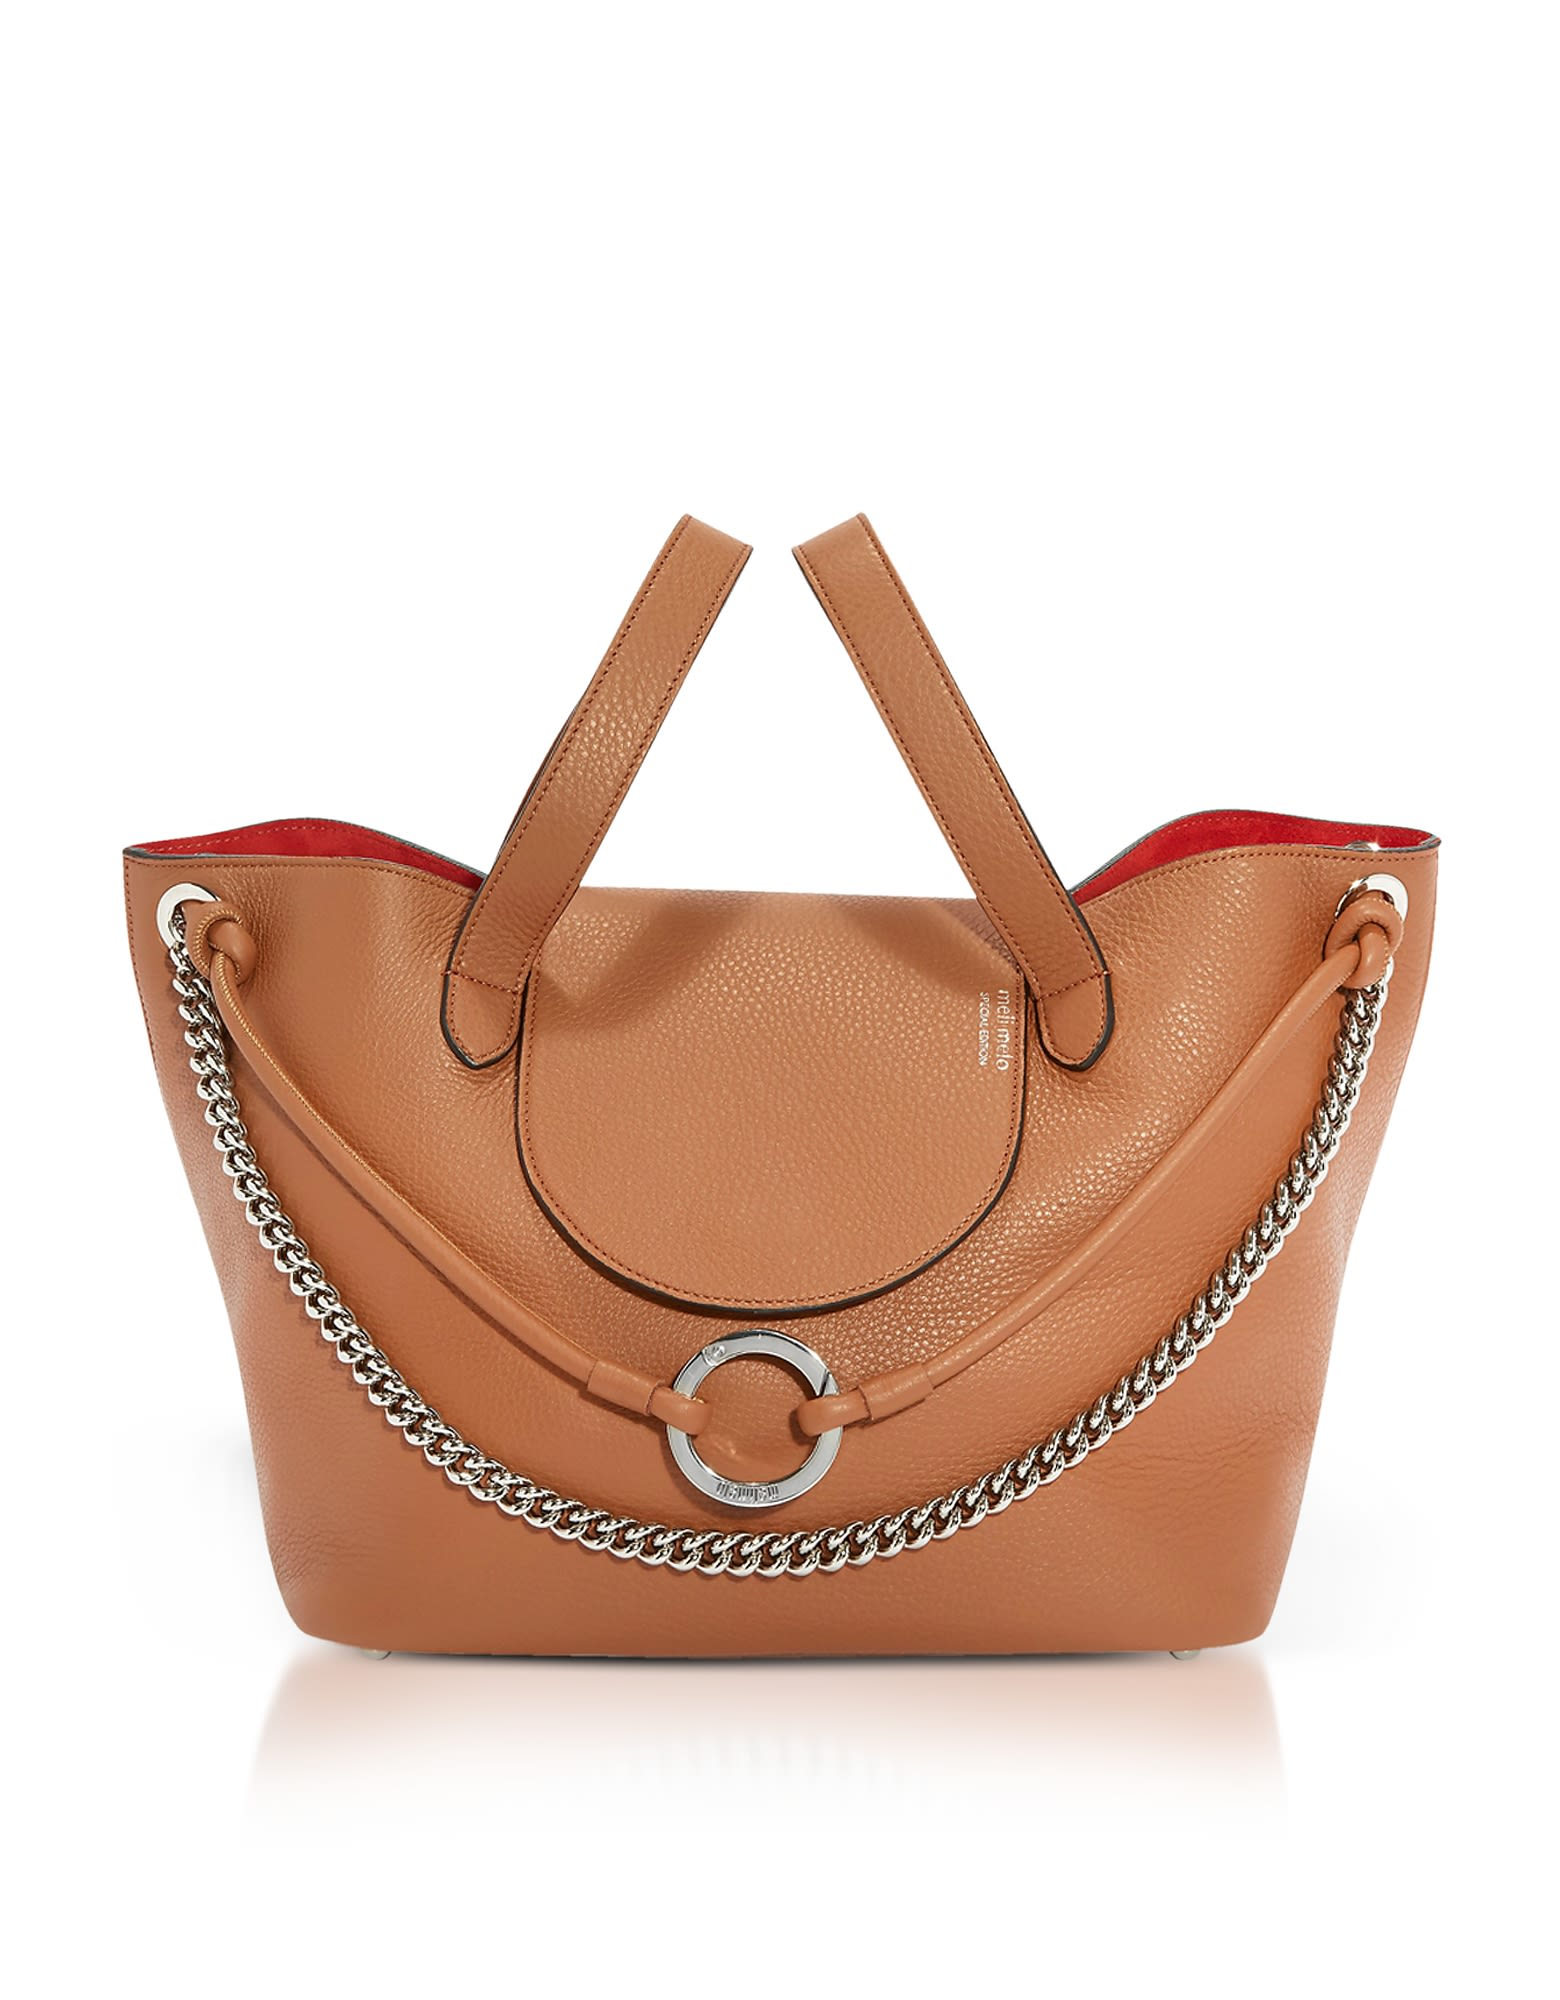 Meli Melo TAN LEATHER LINKED THELA MEDIUM TOTE BAG